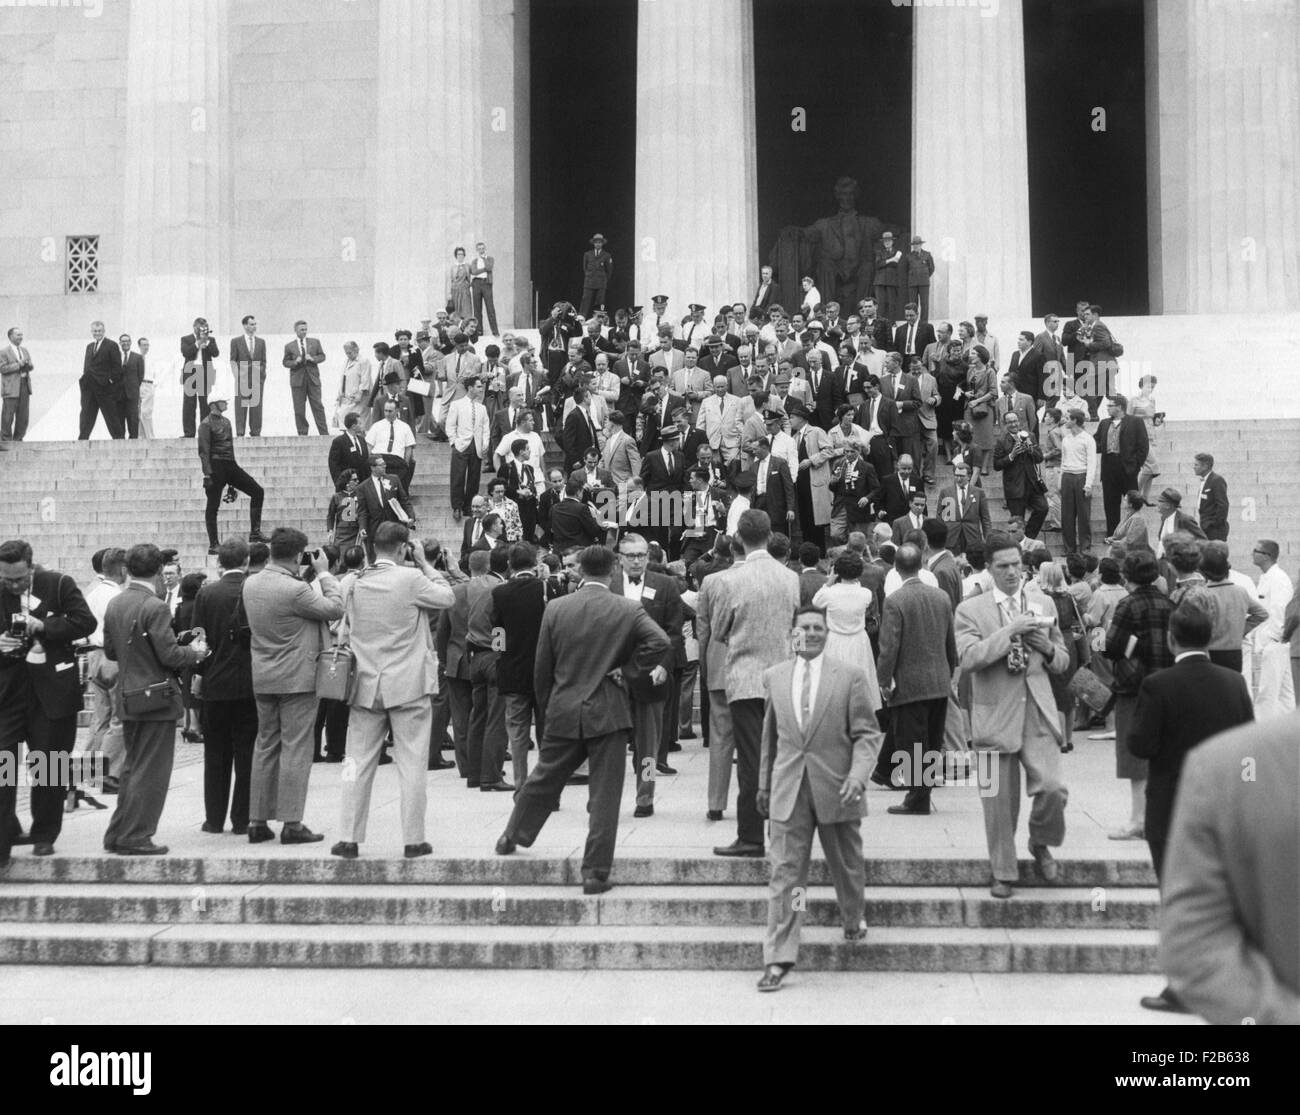 Premier Nikita Khrushchev surrounded by reporters on the steps of the Lincoln Memorial. Sept. 16, 1959. - (BSLOC - Stock Image